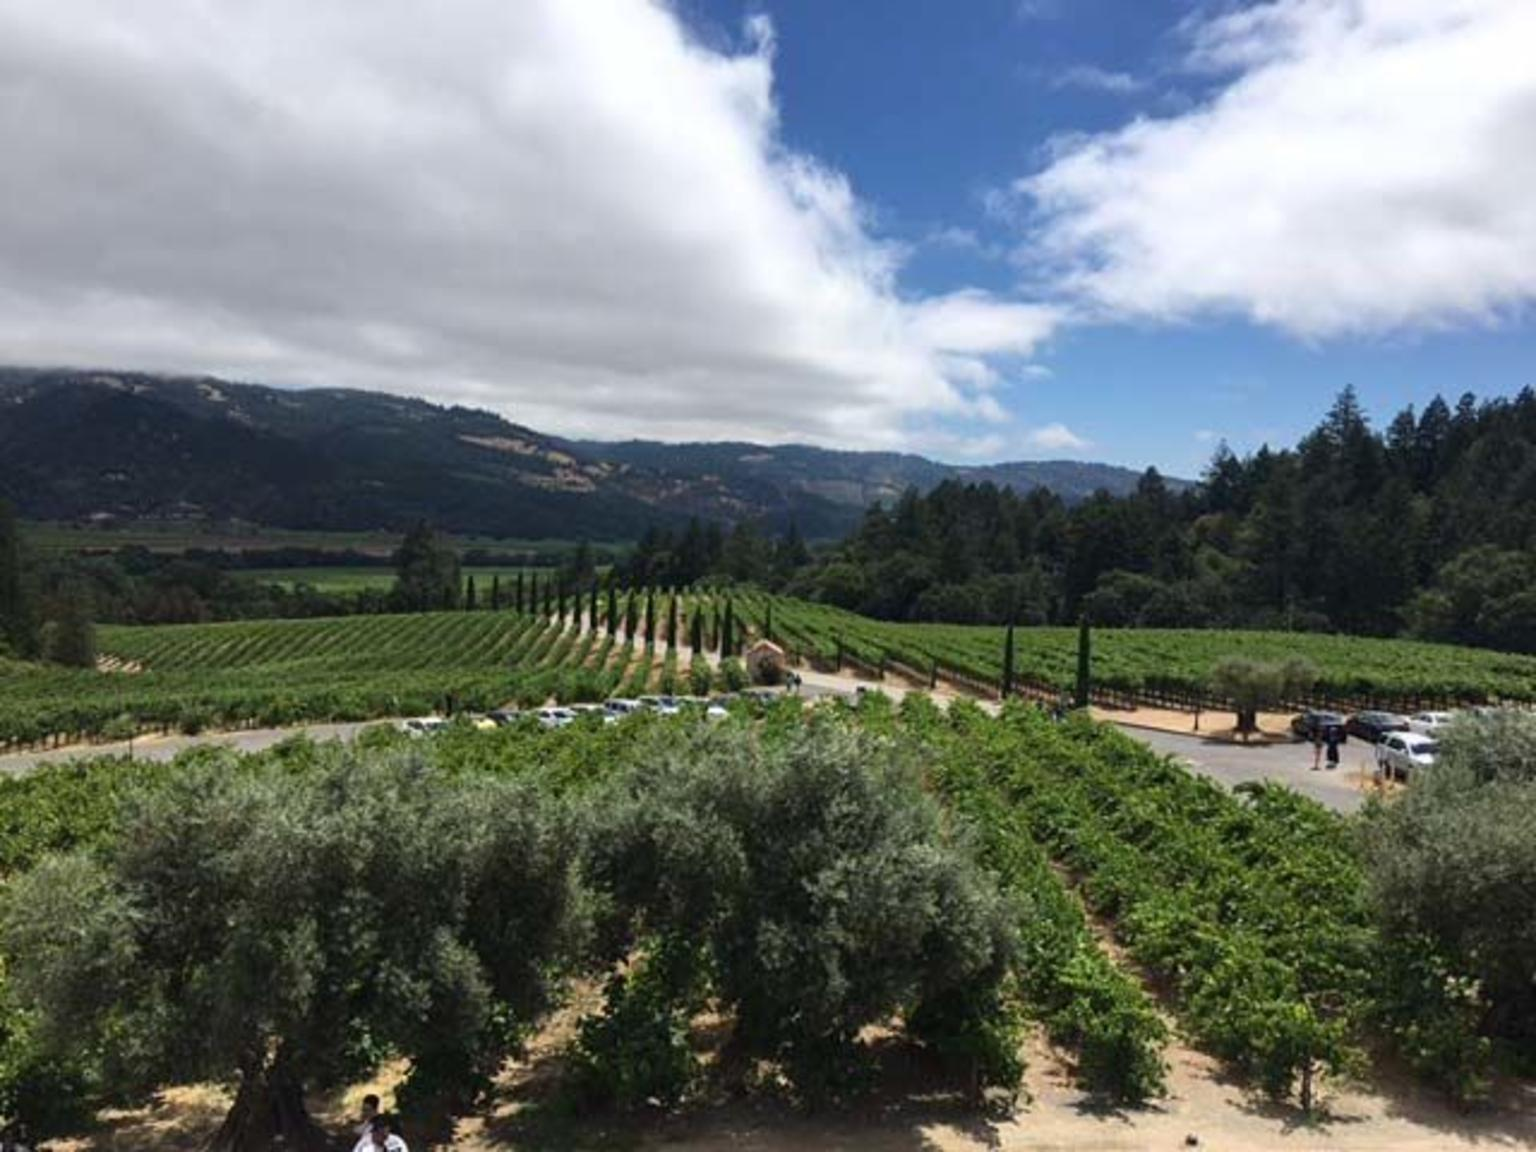 Small-Group Napa Wine Tour With Castello di Amorosa and Lunch